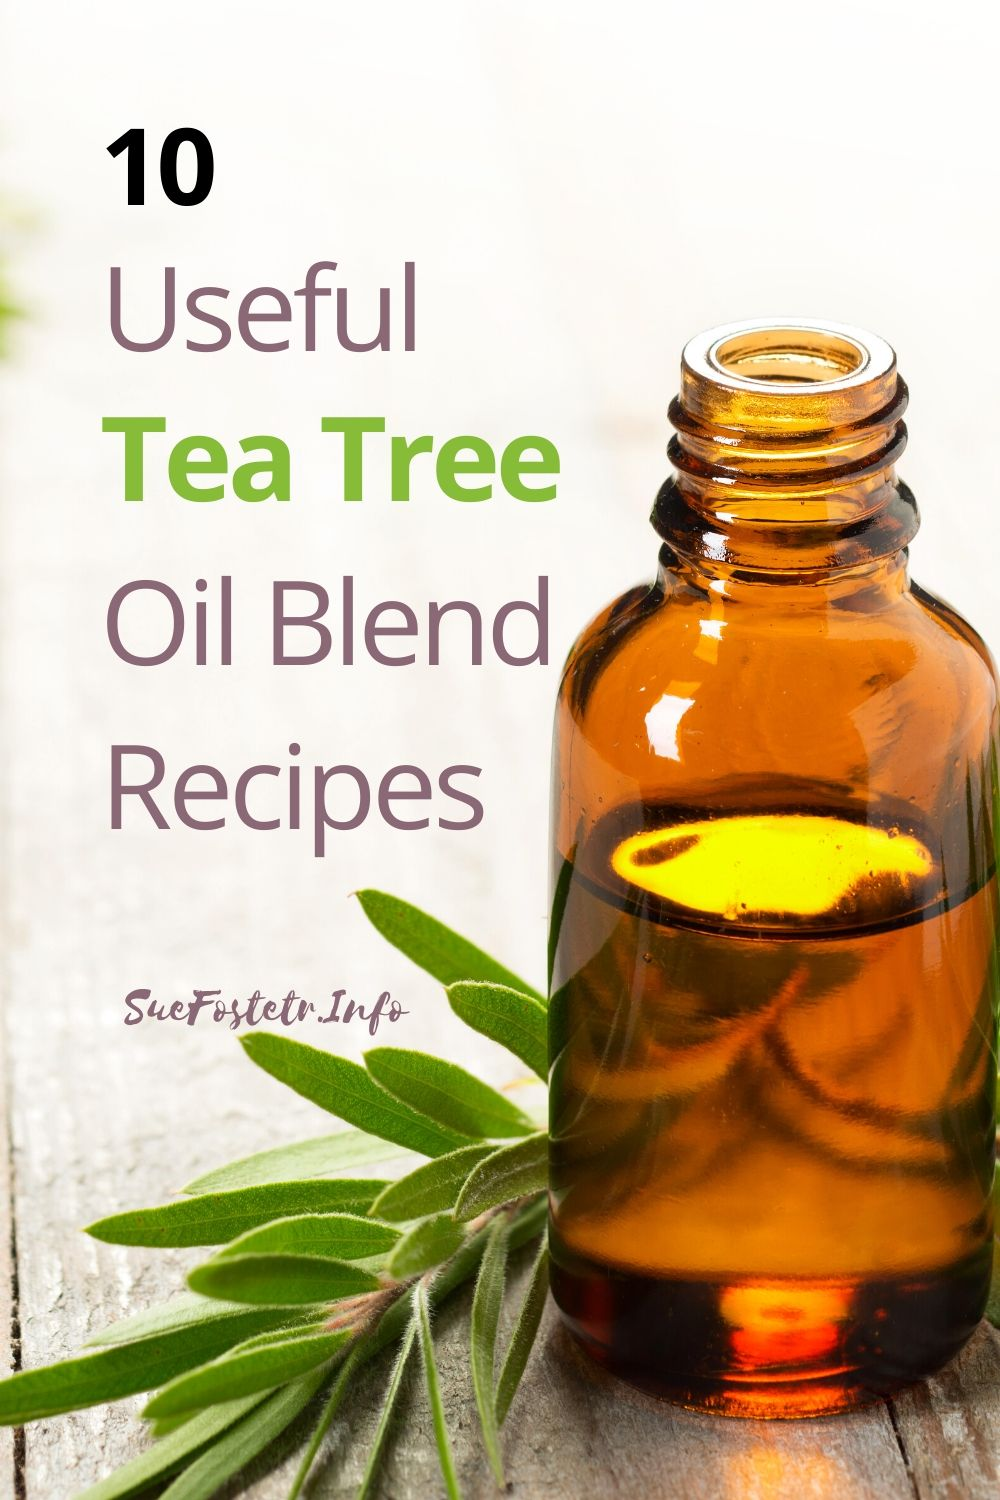 10 useful tea tree oil blend recipes that are so simple to make with very few ingredients.